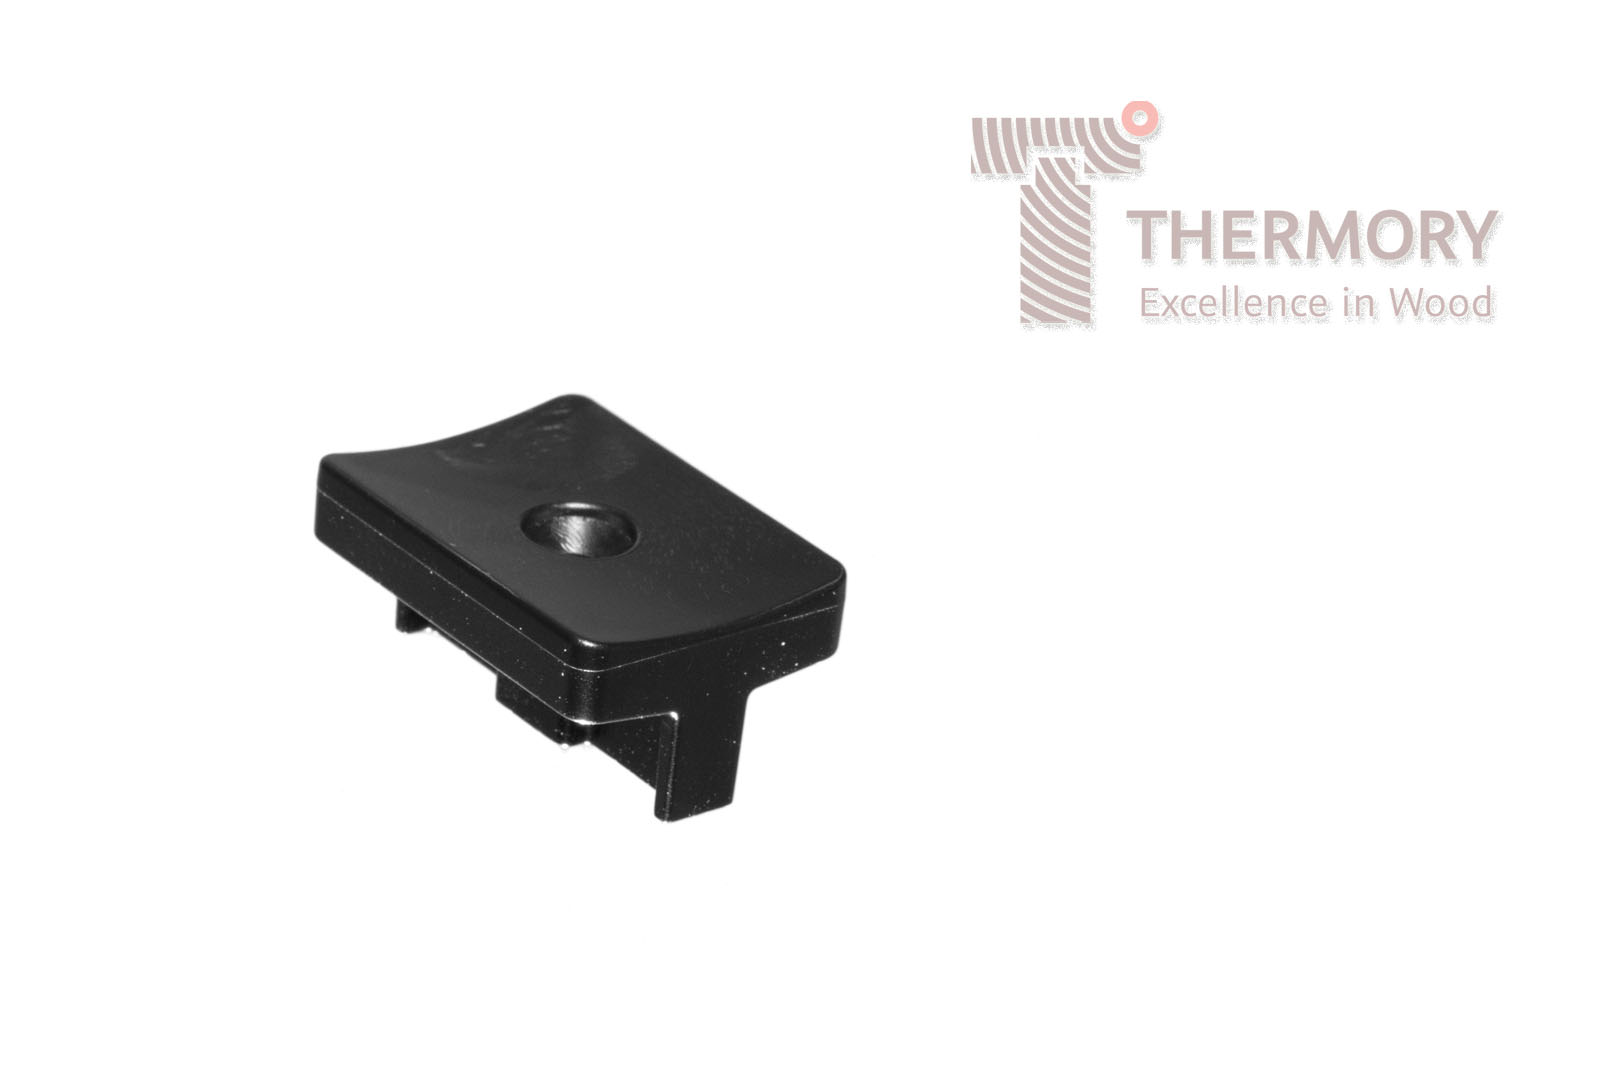 Thermory®Plastic Clip - Thermory®Plastic ClipThe plastic clips works in the same way as the steel clip, they are screwed into the joists and the decking boards simply slot into the profile.Product InformationSimple Thermory® Hidden Fixing SystemDesigned for use with D4 sg, D30 profile decking boardsEasy installationNo visible screwsQuick installation without specialized toolsLeaves a 6mm gap between boards